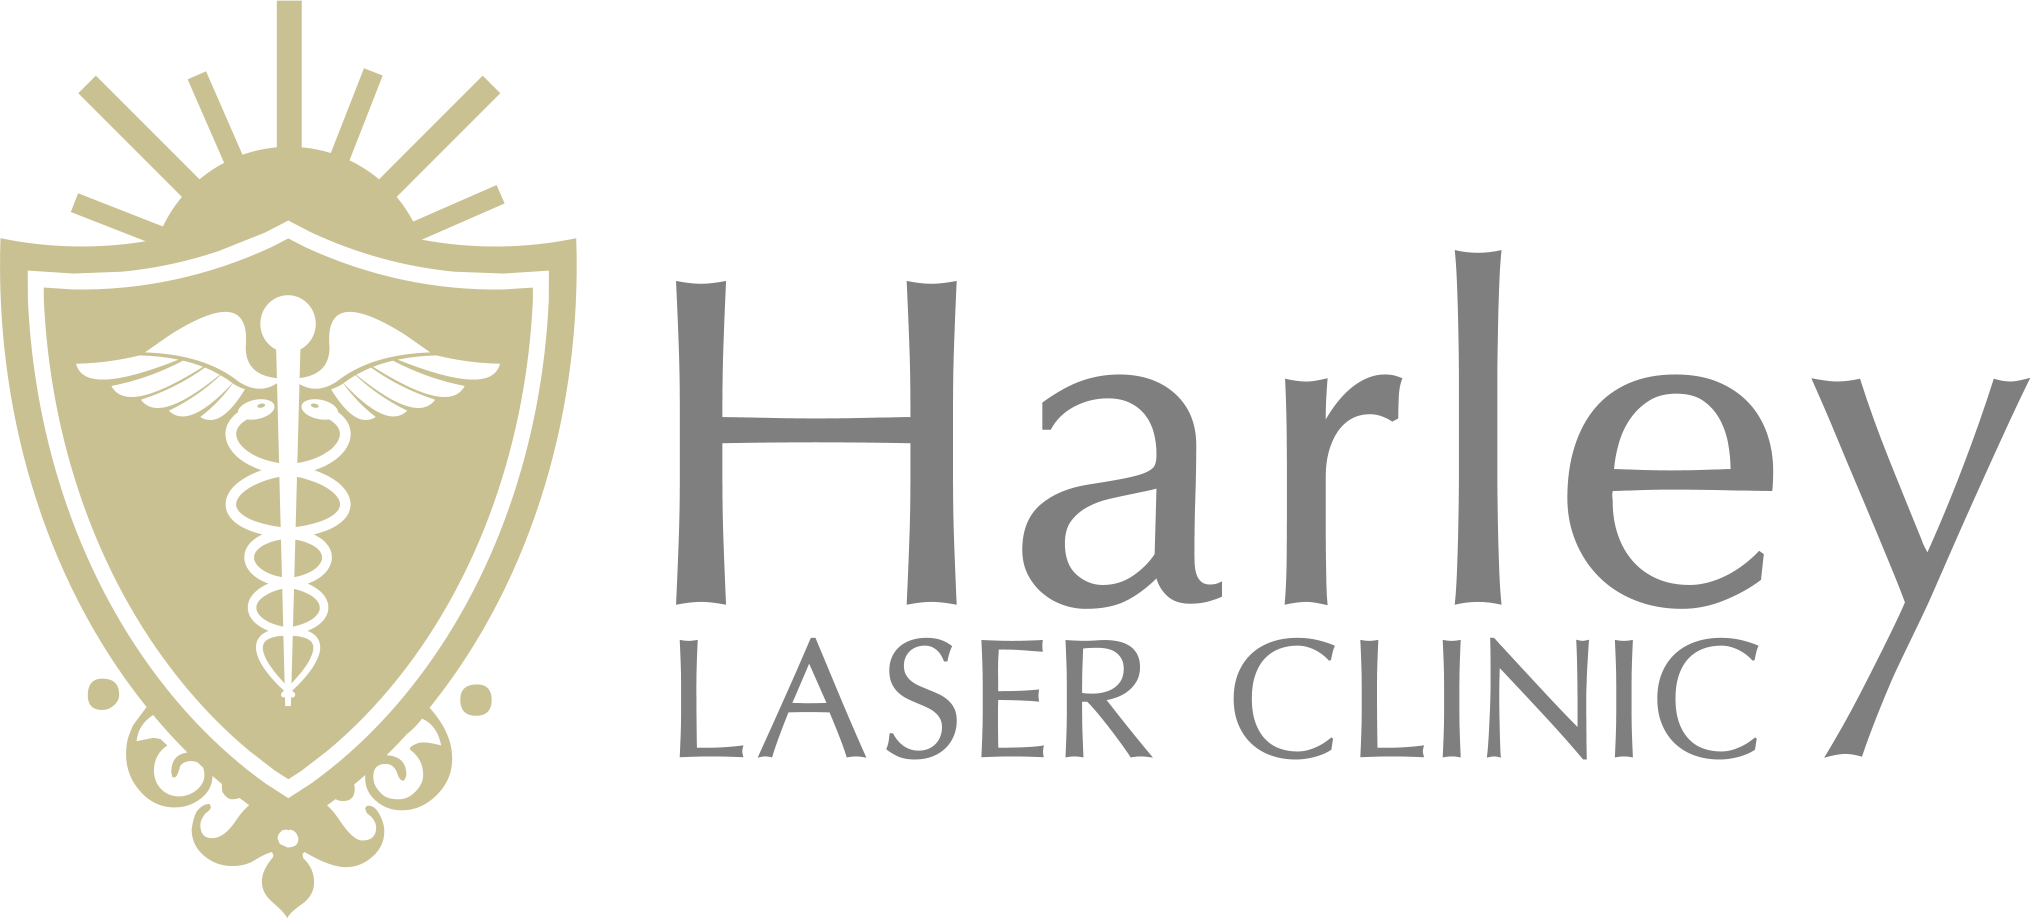 The Harley Laser Clinic